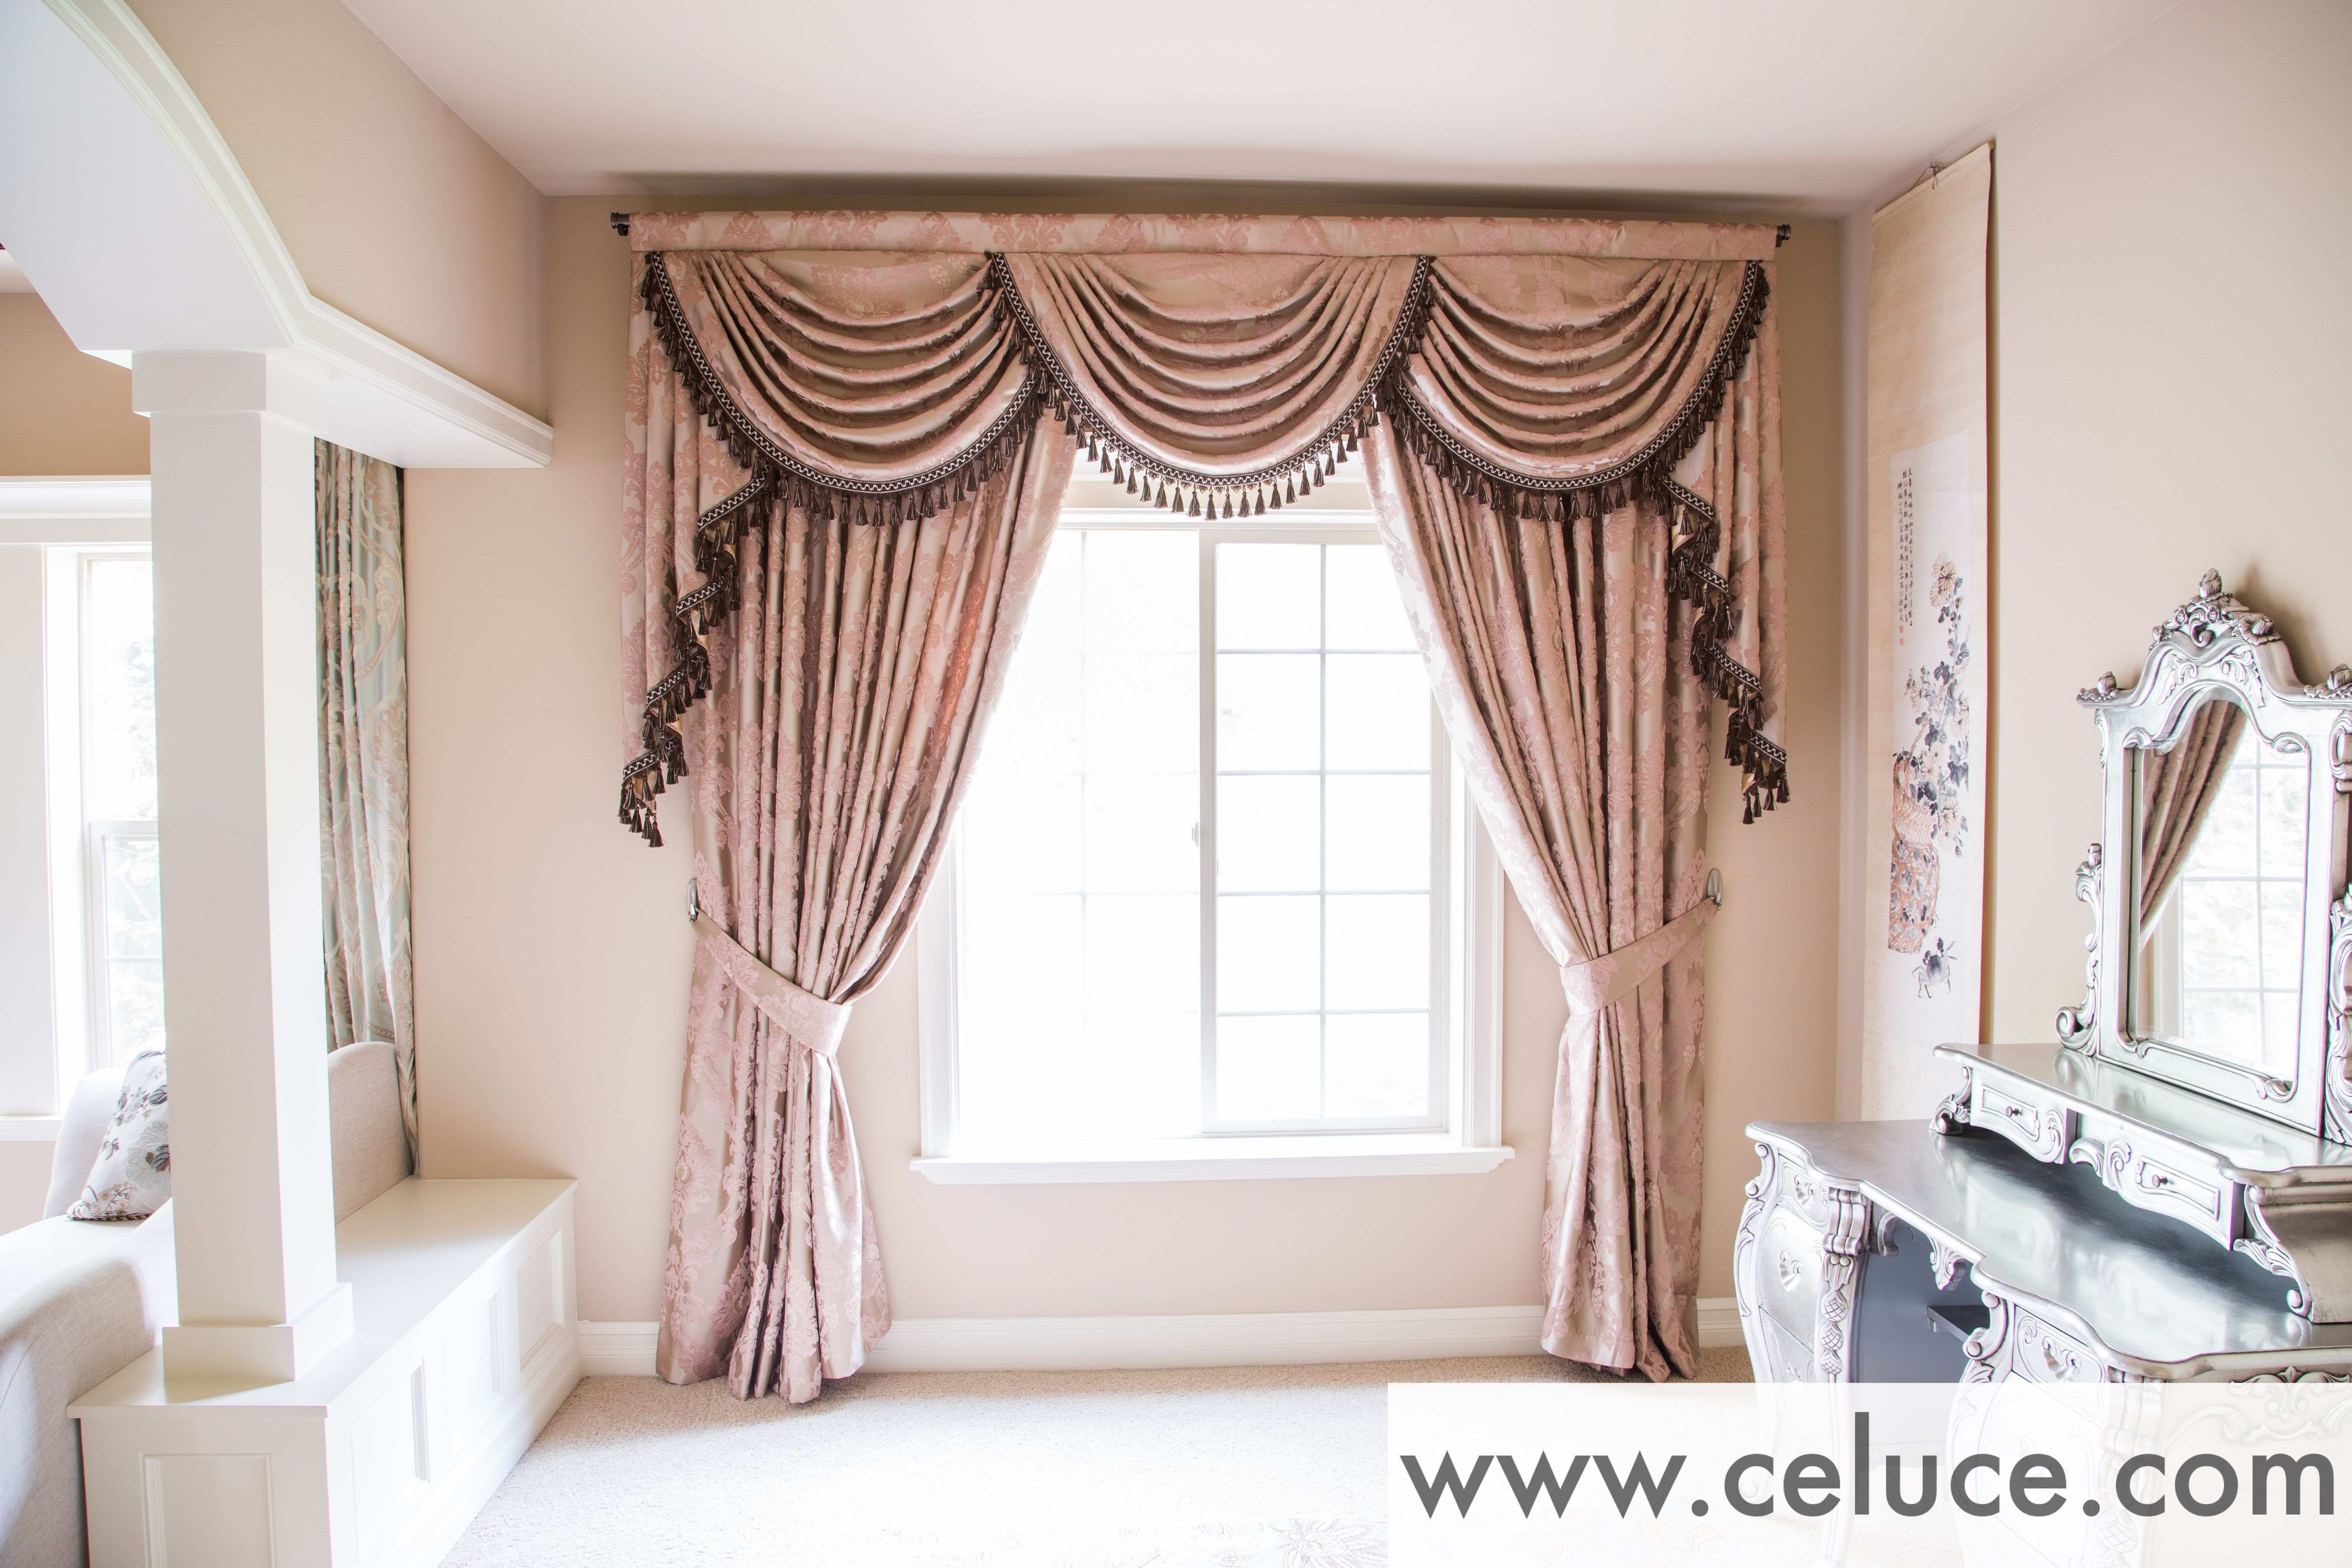 victorian i elegant extra substituted of an long curtains drapes no with was curtain shower lovely